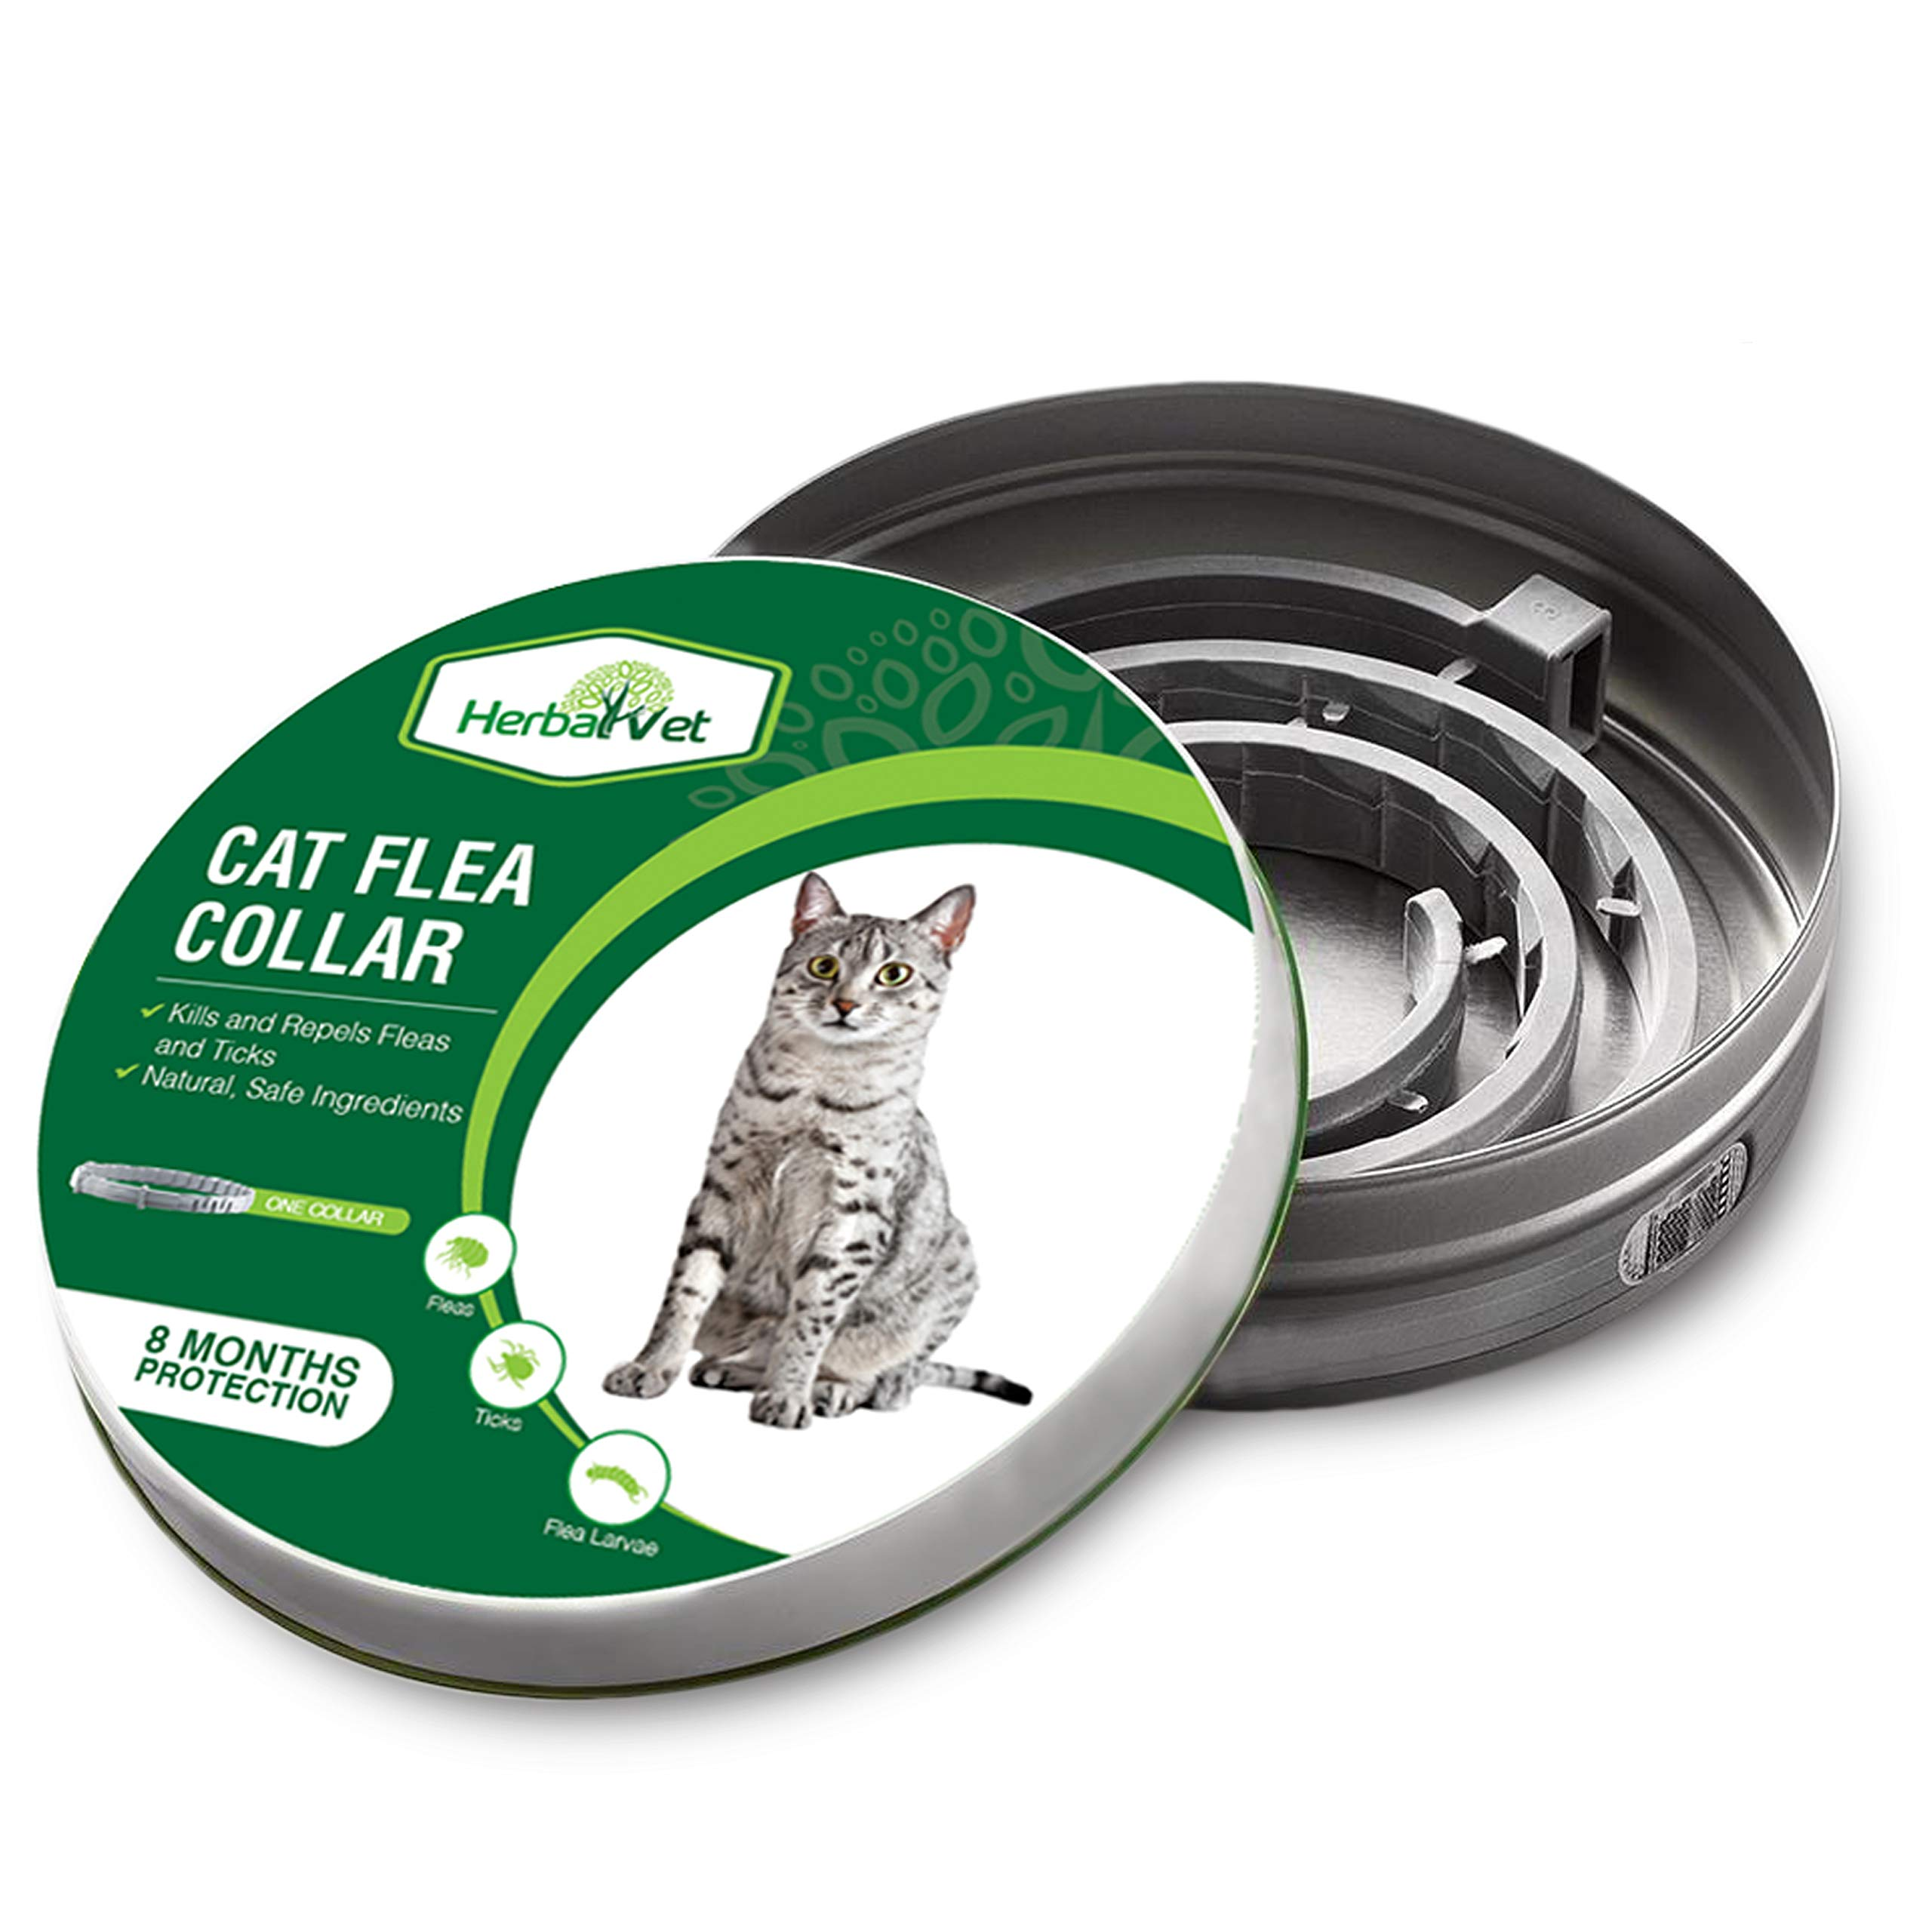 HerbalVet Cat Flea Collar for Flea and Tick Treatment and Prevention | Premium Version, Collars Work for Cats and Kittens, Prevents Reinfection | Helpful E-Book Included by HerbalVet